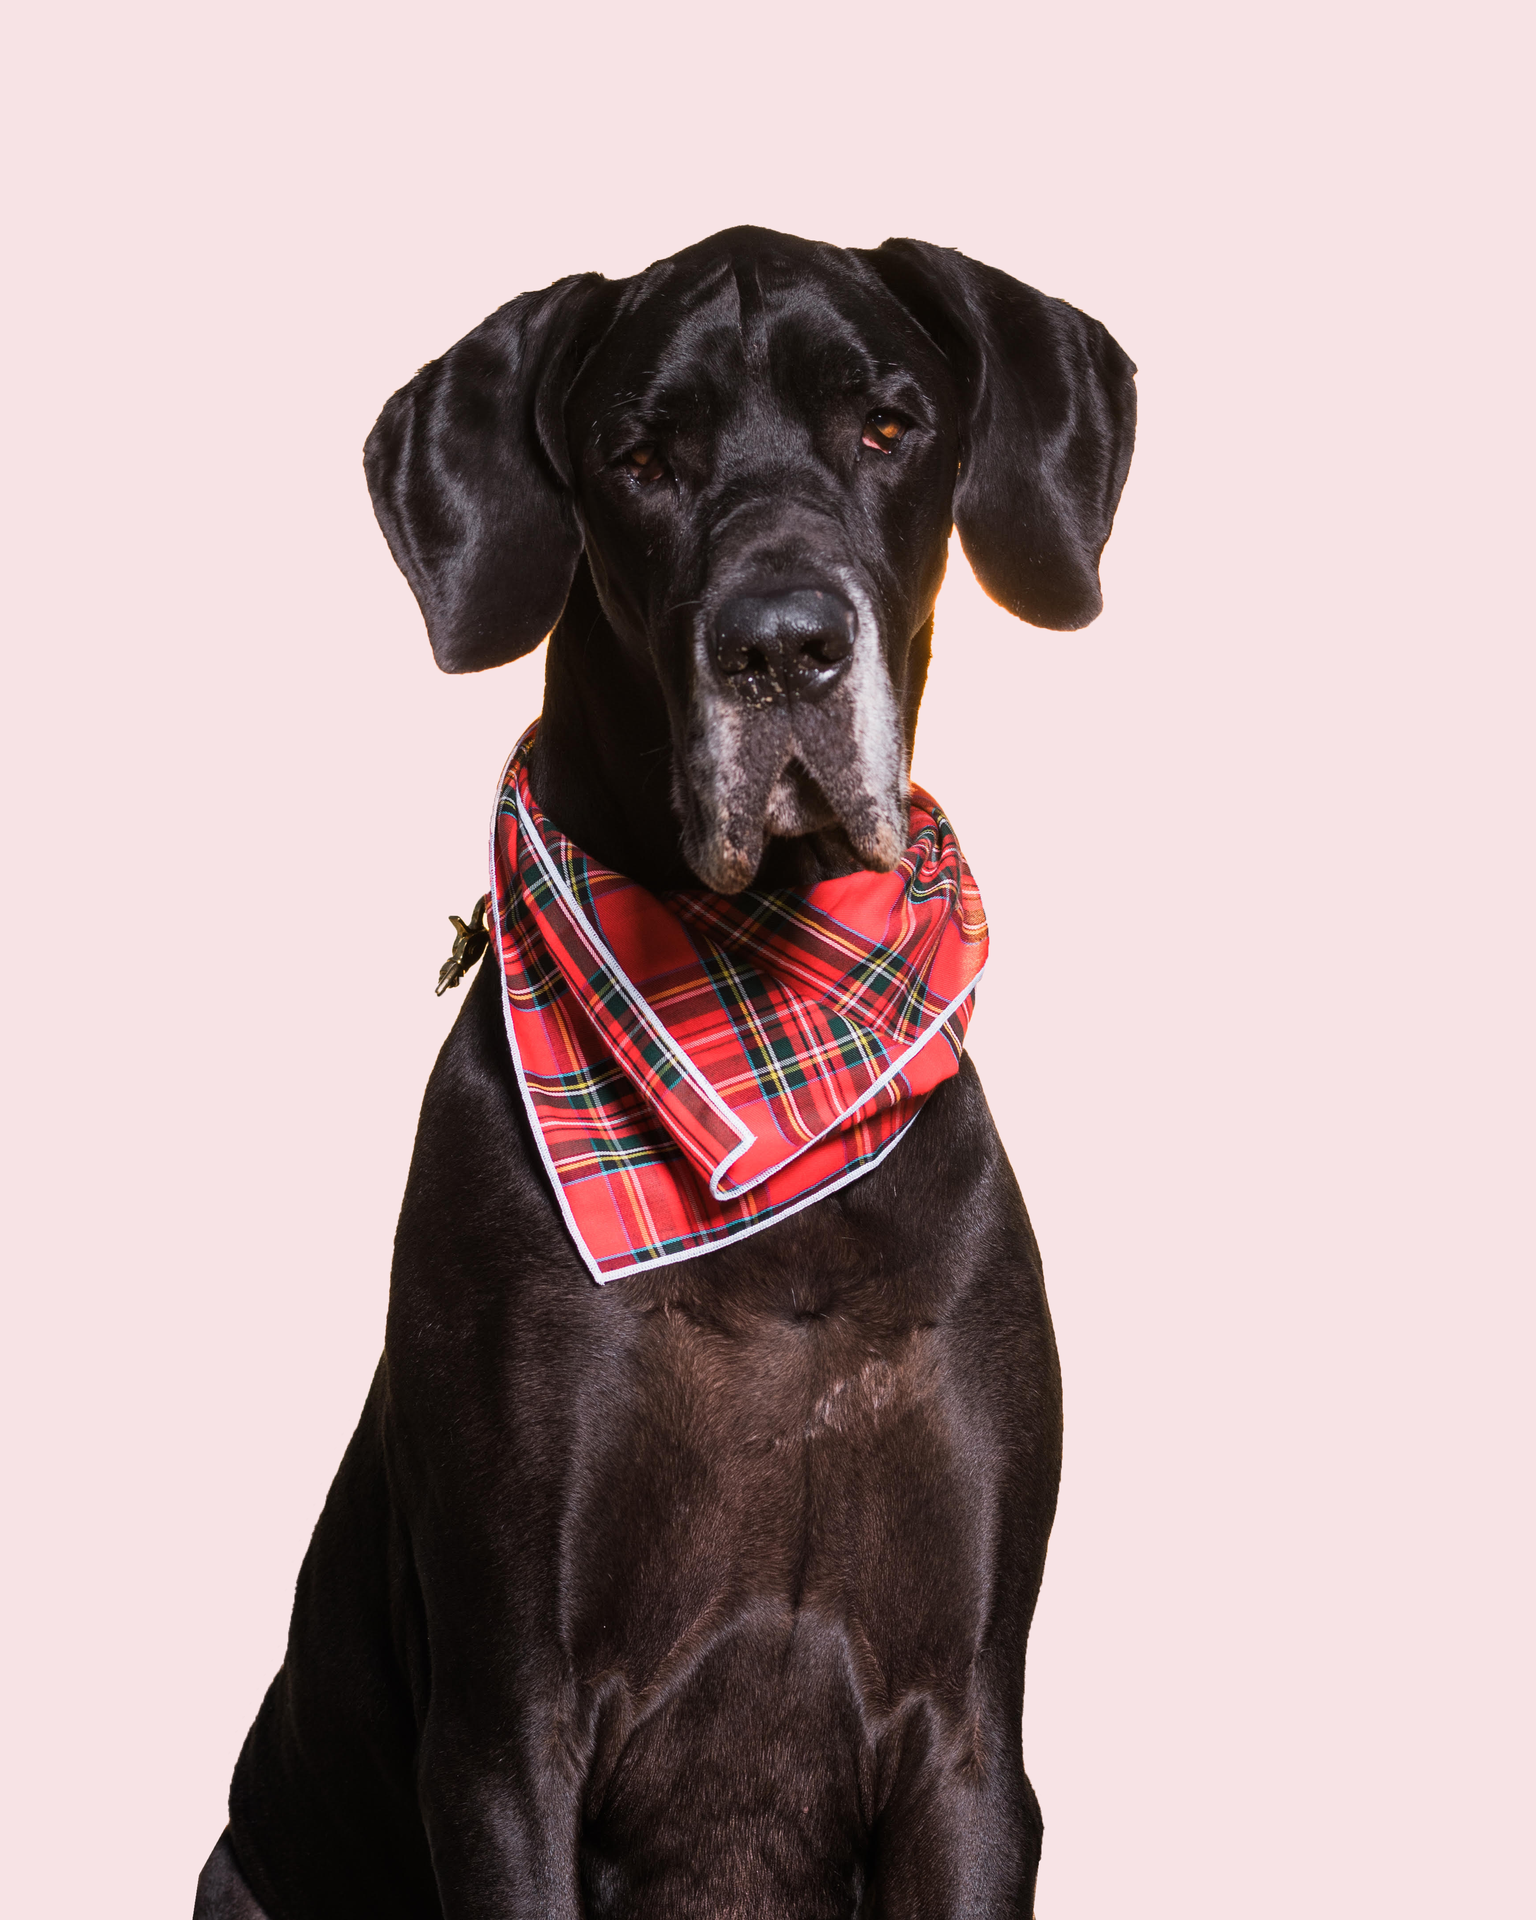 BOURBON3/Great Dane - Enjoys long walks on the beach, always wears SPF.